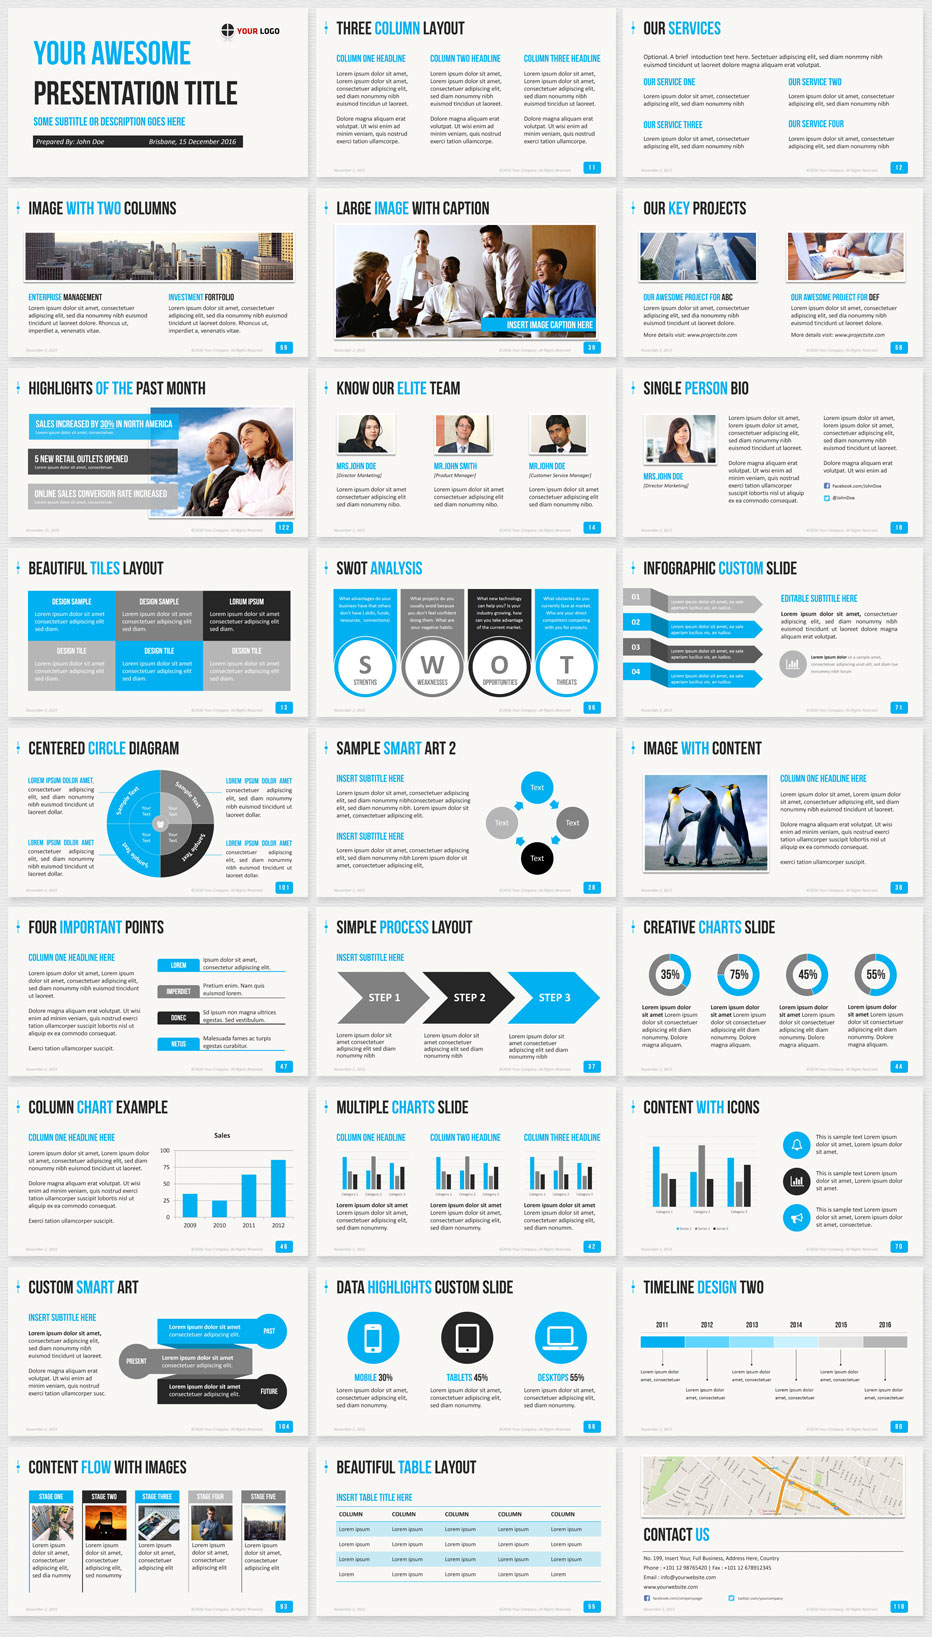 professional presentation templates or free powerpoint themes, Modern powerpoint